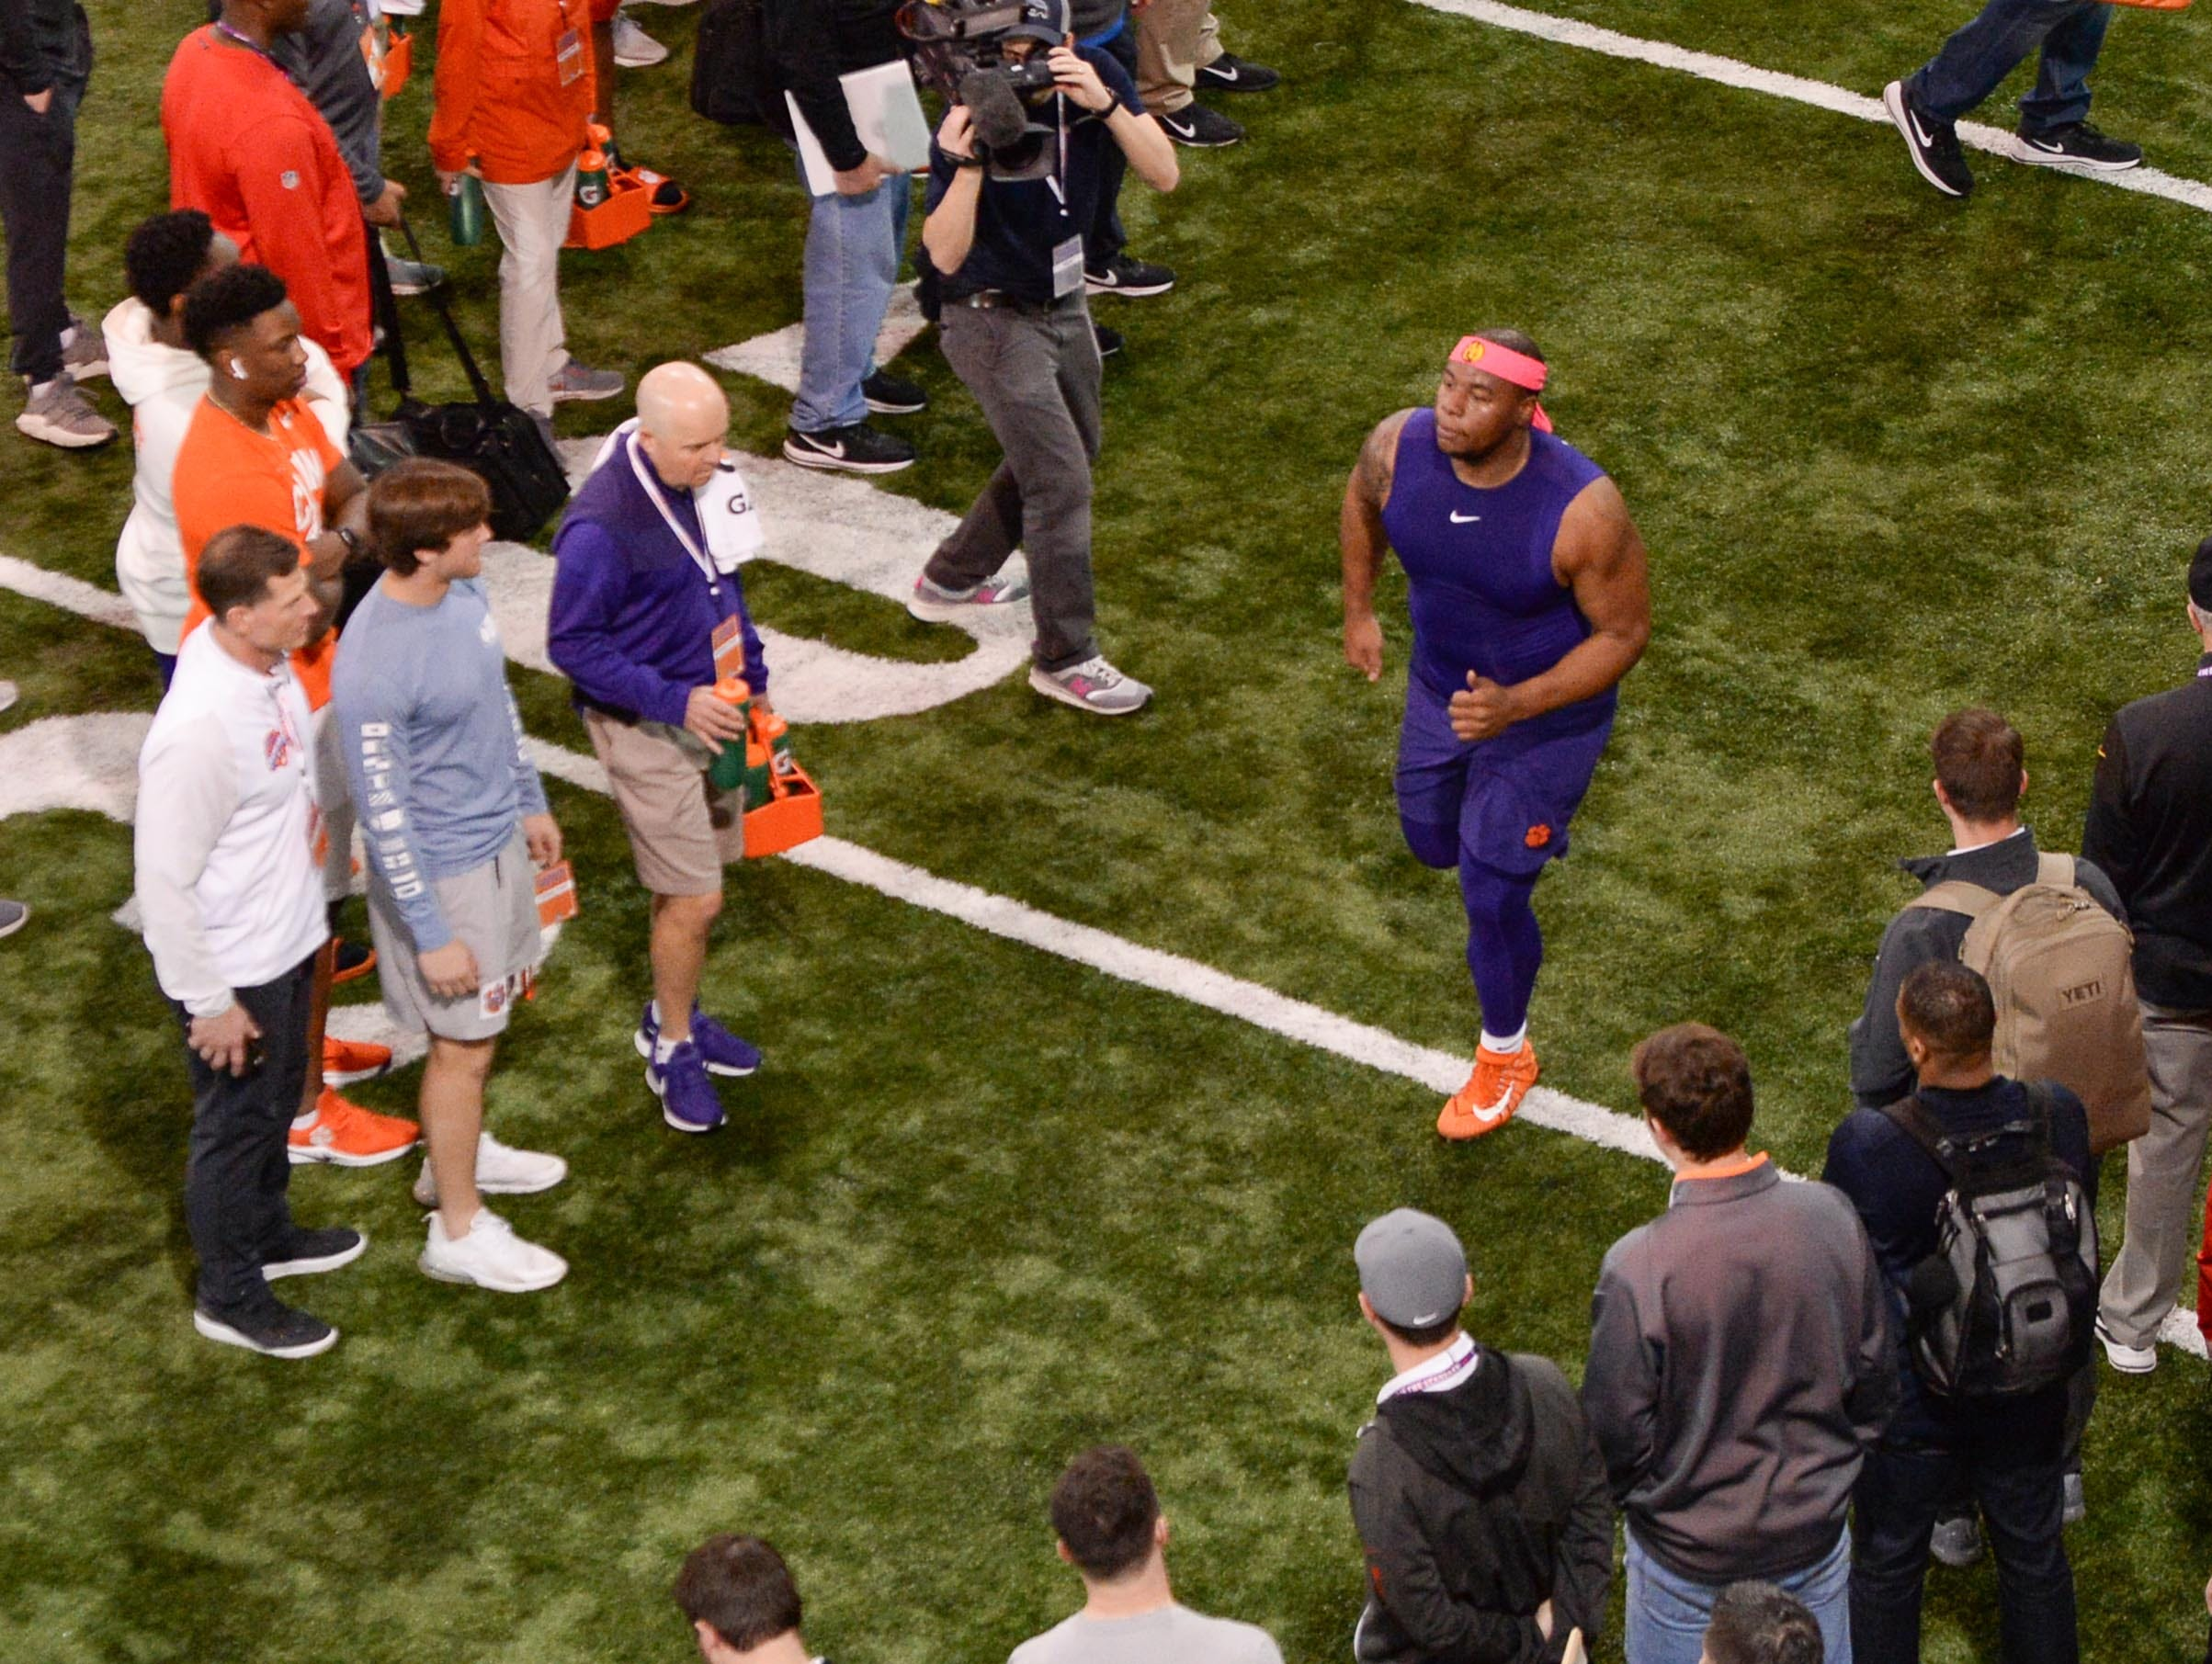 Defensive lineman Dexter Lawrence runs in a drill during Clemson pro day at the Poe Indoor Facility in Clemson Thursday, March 14, 2019.